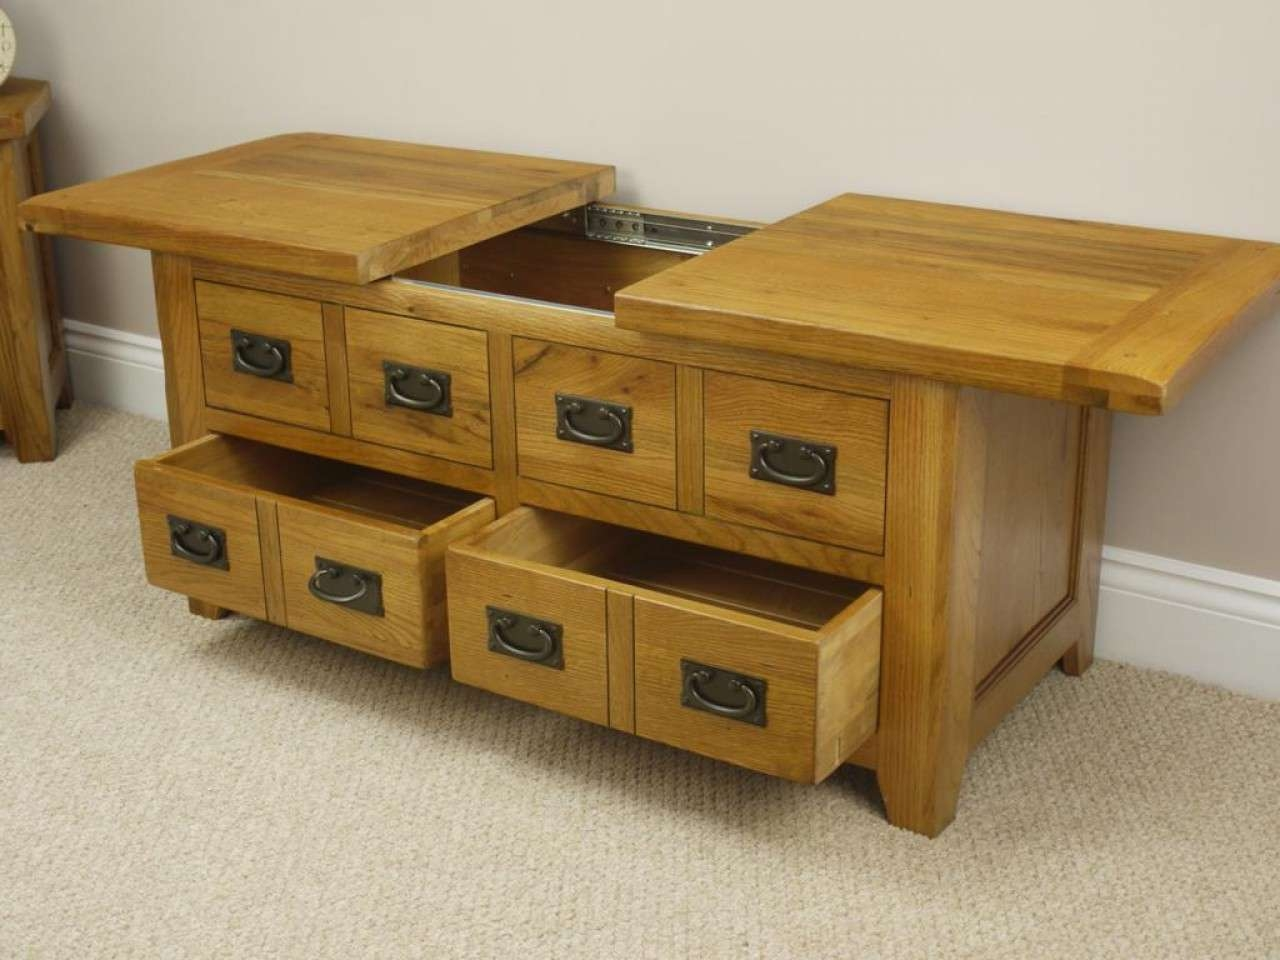 Rustic Storage Coffee Table Style — Home Design Ideas For Most Recently Released Rustic Square Coffee Table With Storage (View 16 of 20)